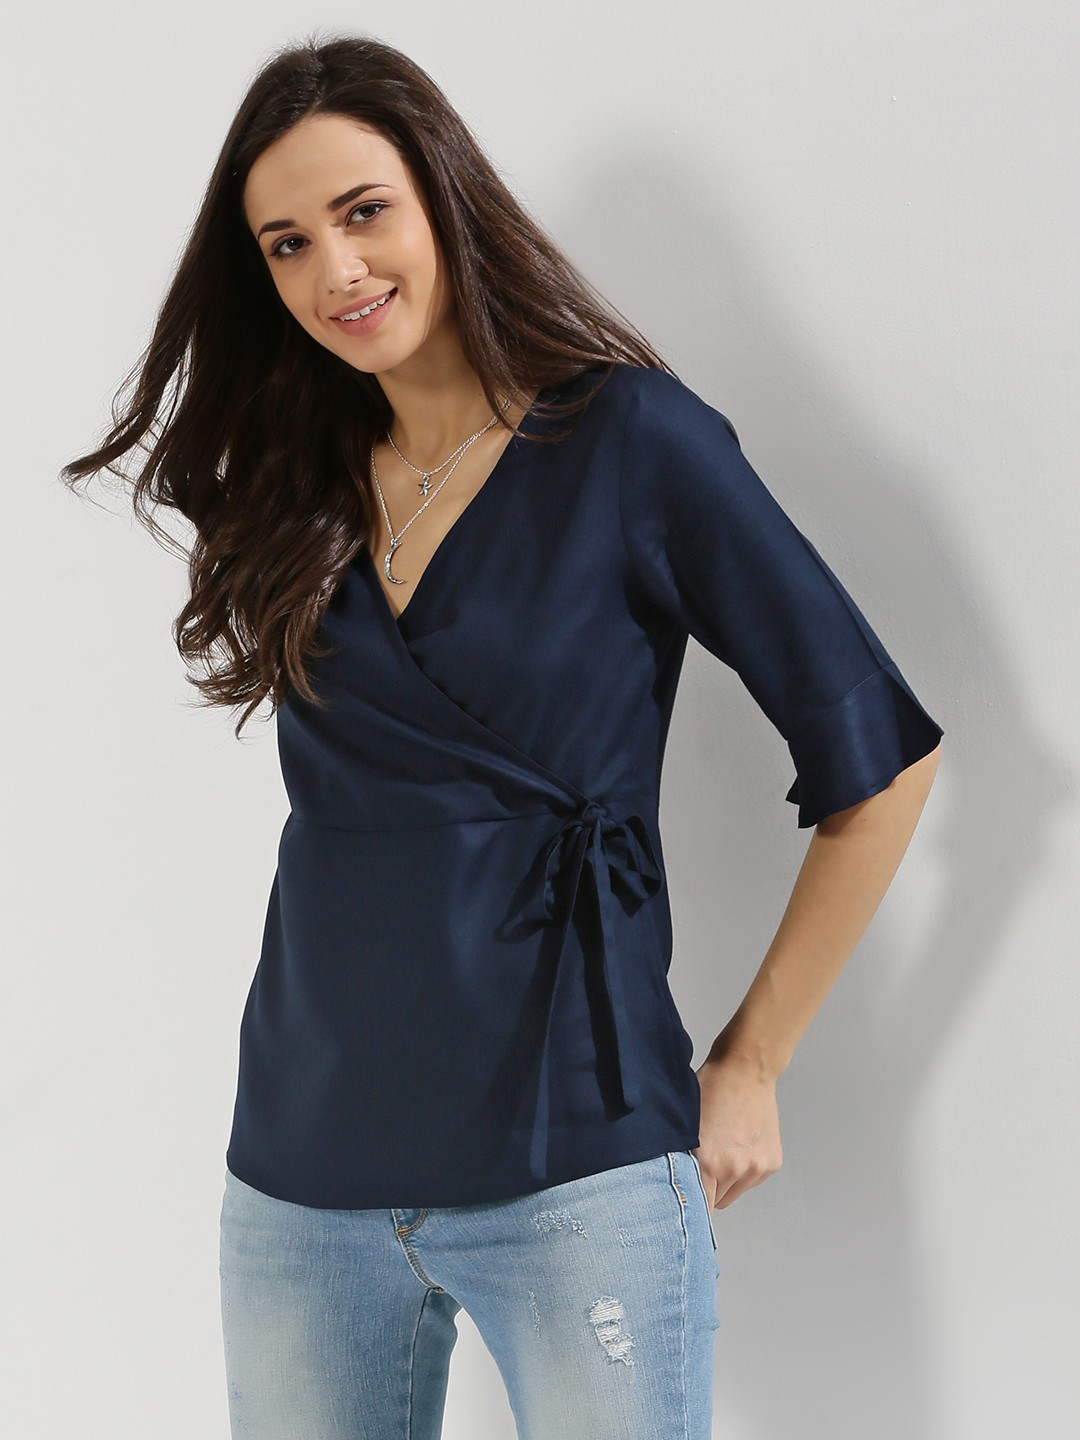 Buy FEMELLA Wrap Top For Women - Women's Navy Blouses Online in India